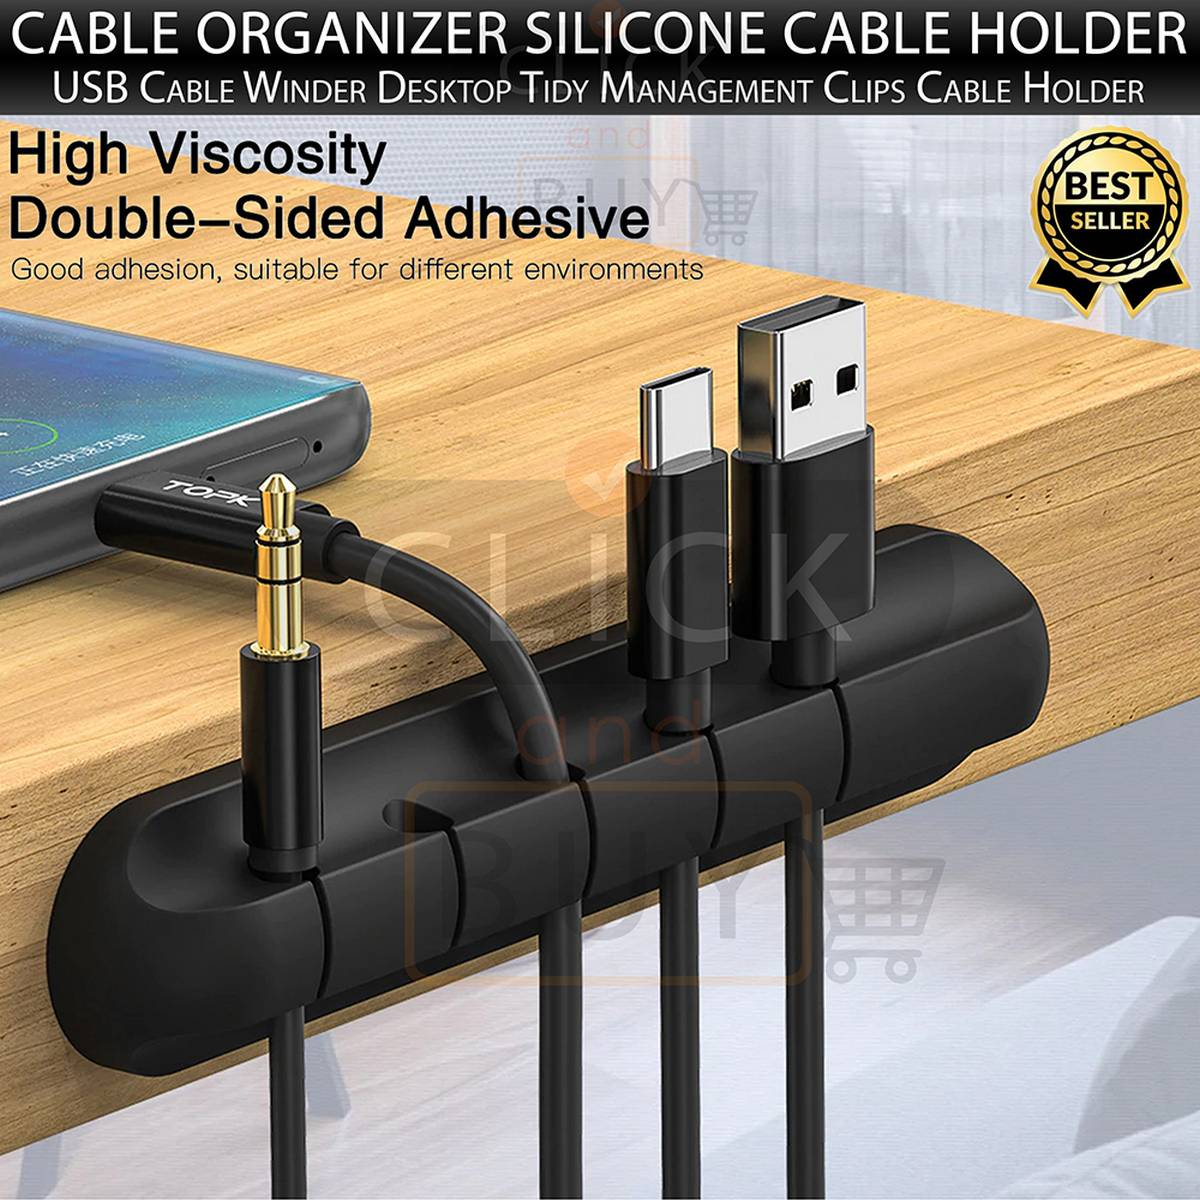 TOPK Cable Organizer Silicone USB Cable Winder Desktop Tidy Management Clips Cable Holder for Mouse Headphone Wire